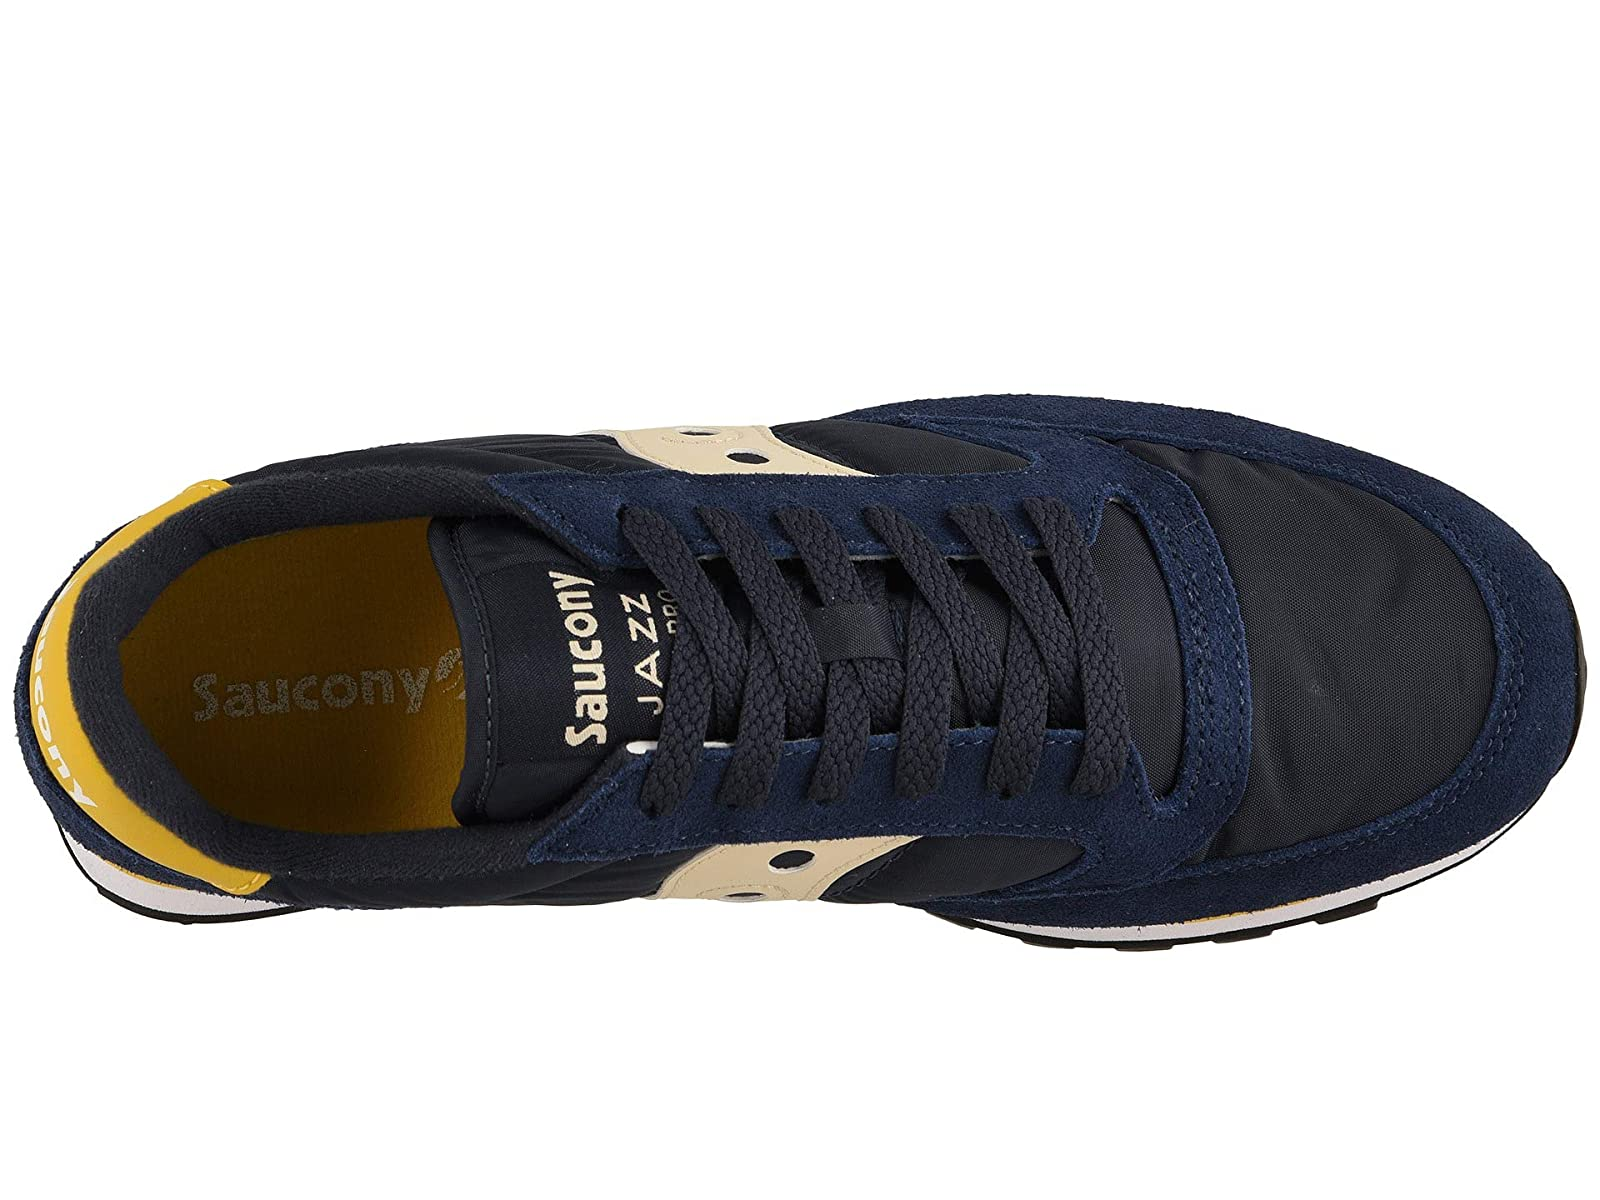 Man-039-s-Sneakers-amp-Athletic-Shoes-Saucony-Originals-Jazz-Low-Pro thumbnail 136